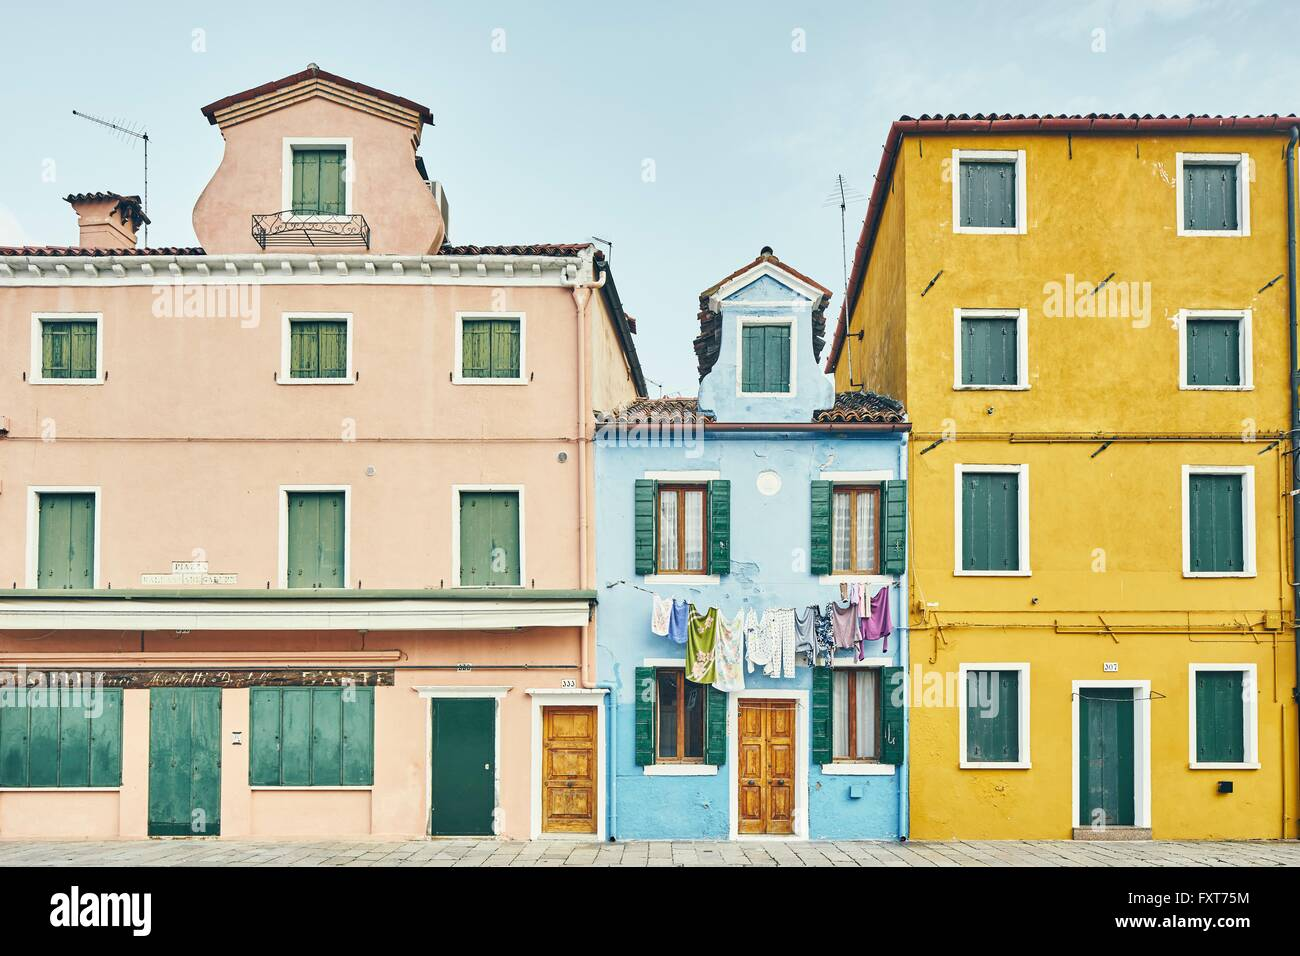 Facade of traditional multi colored houses, Burano, Venice, Italy - Stock Image